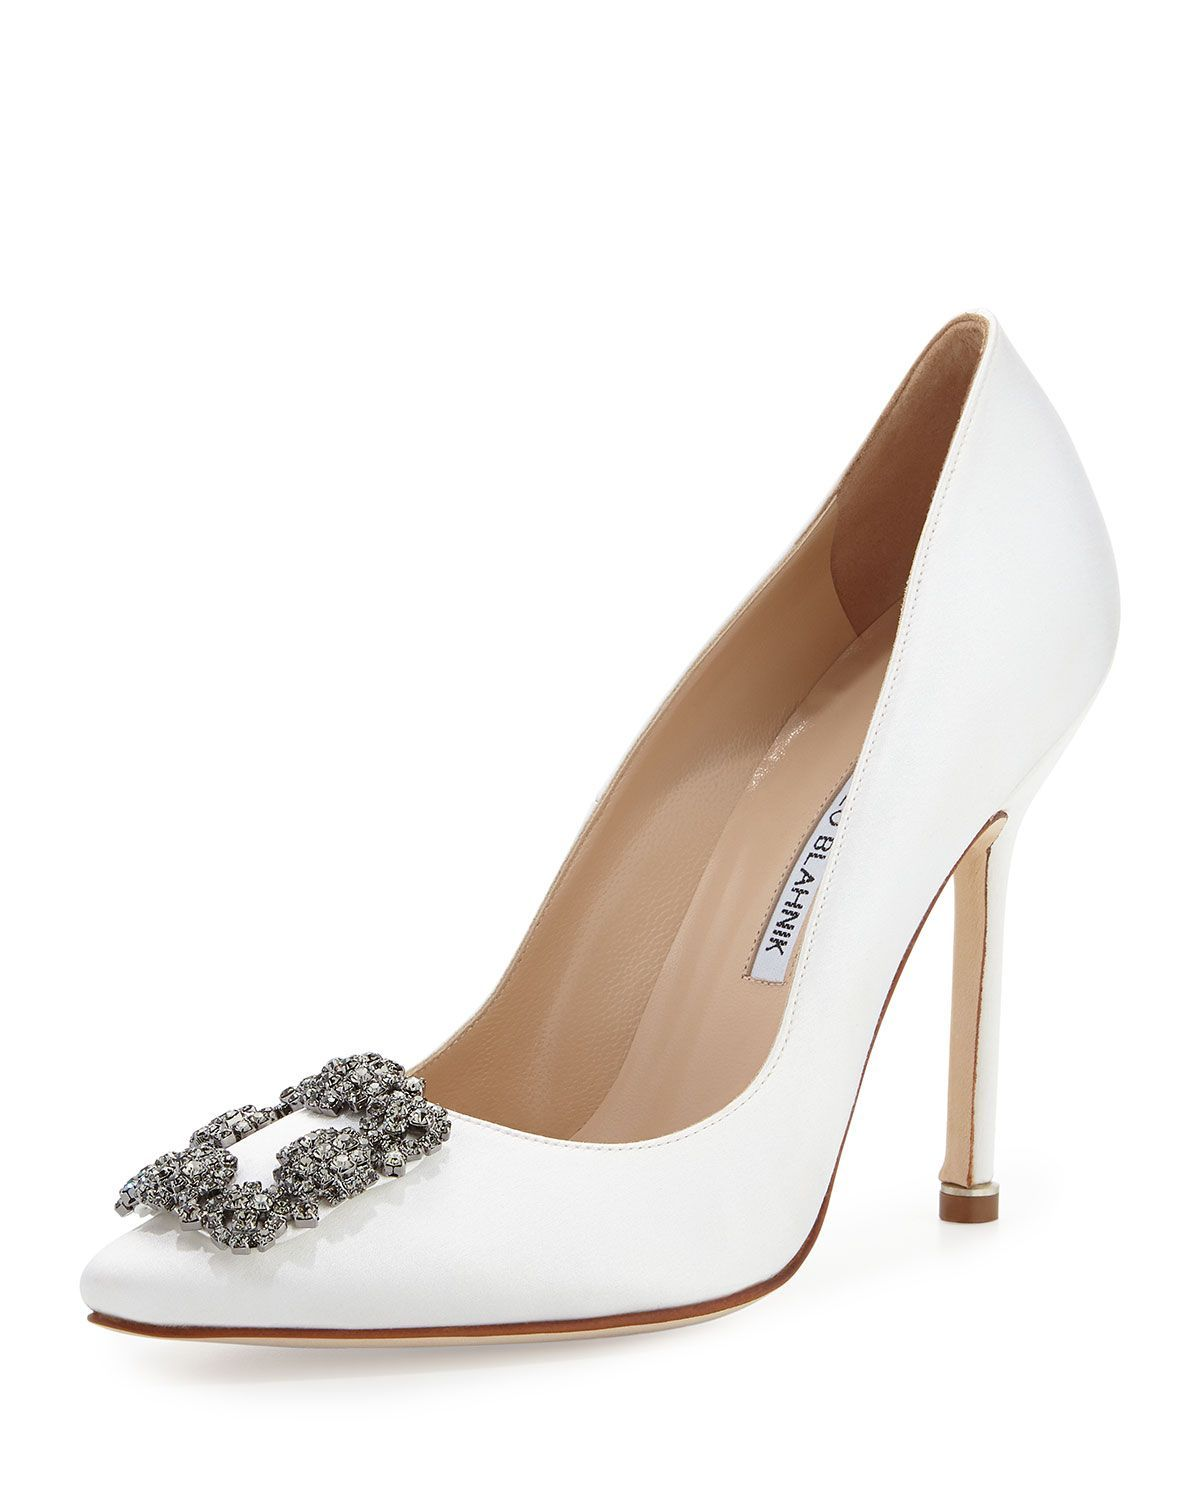 Hangisi Wedding Shoes By Manolo Blahnik